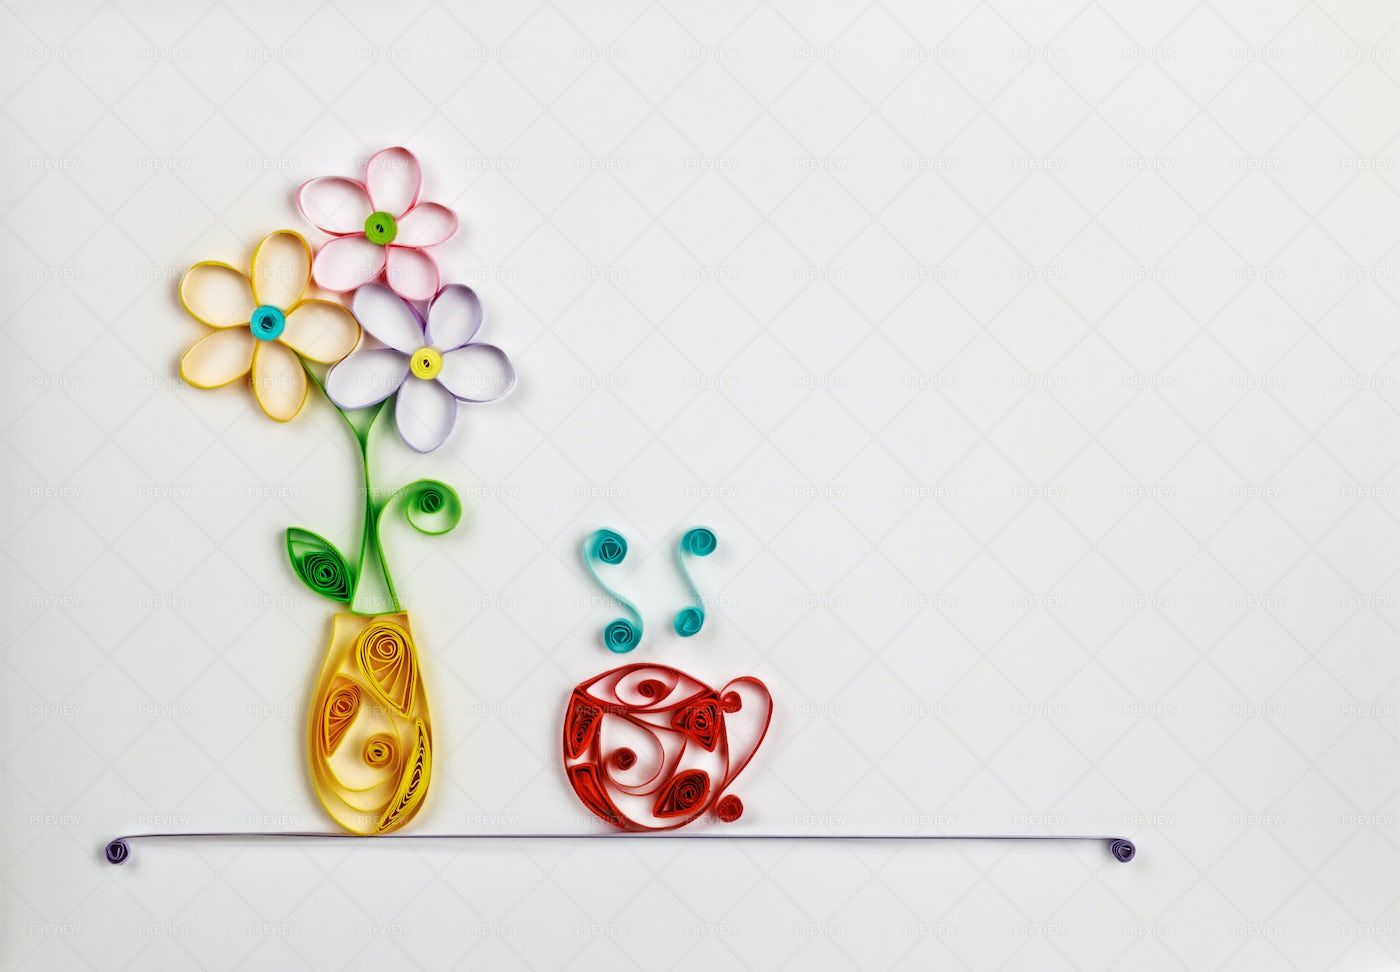 Flowers In Quilling Technique: Stock Photos